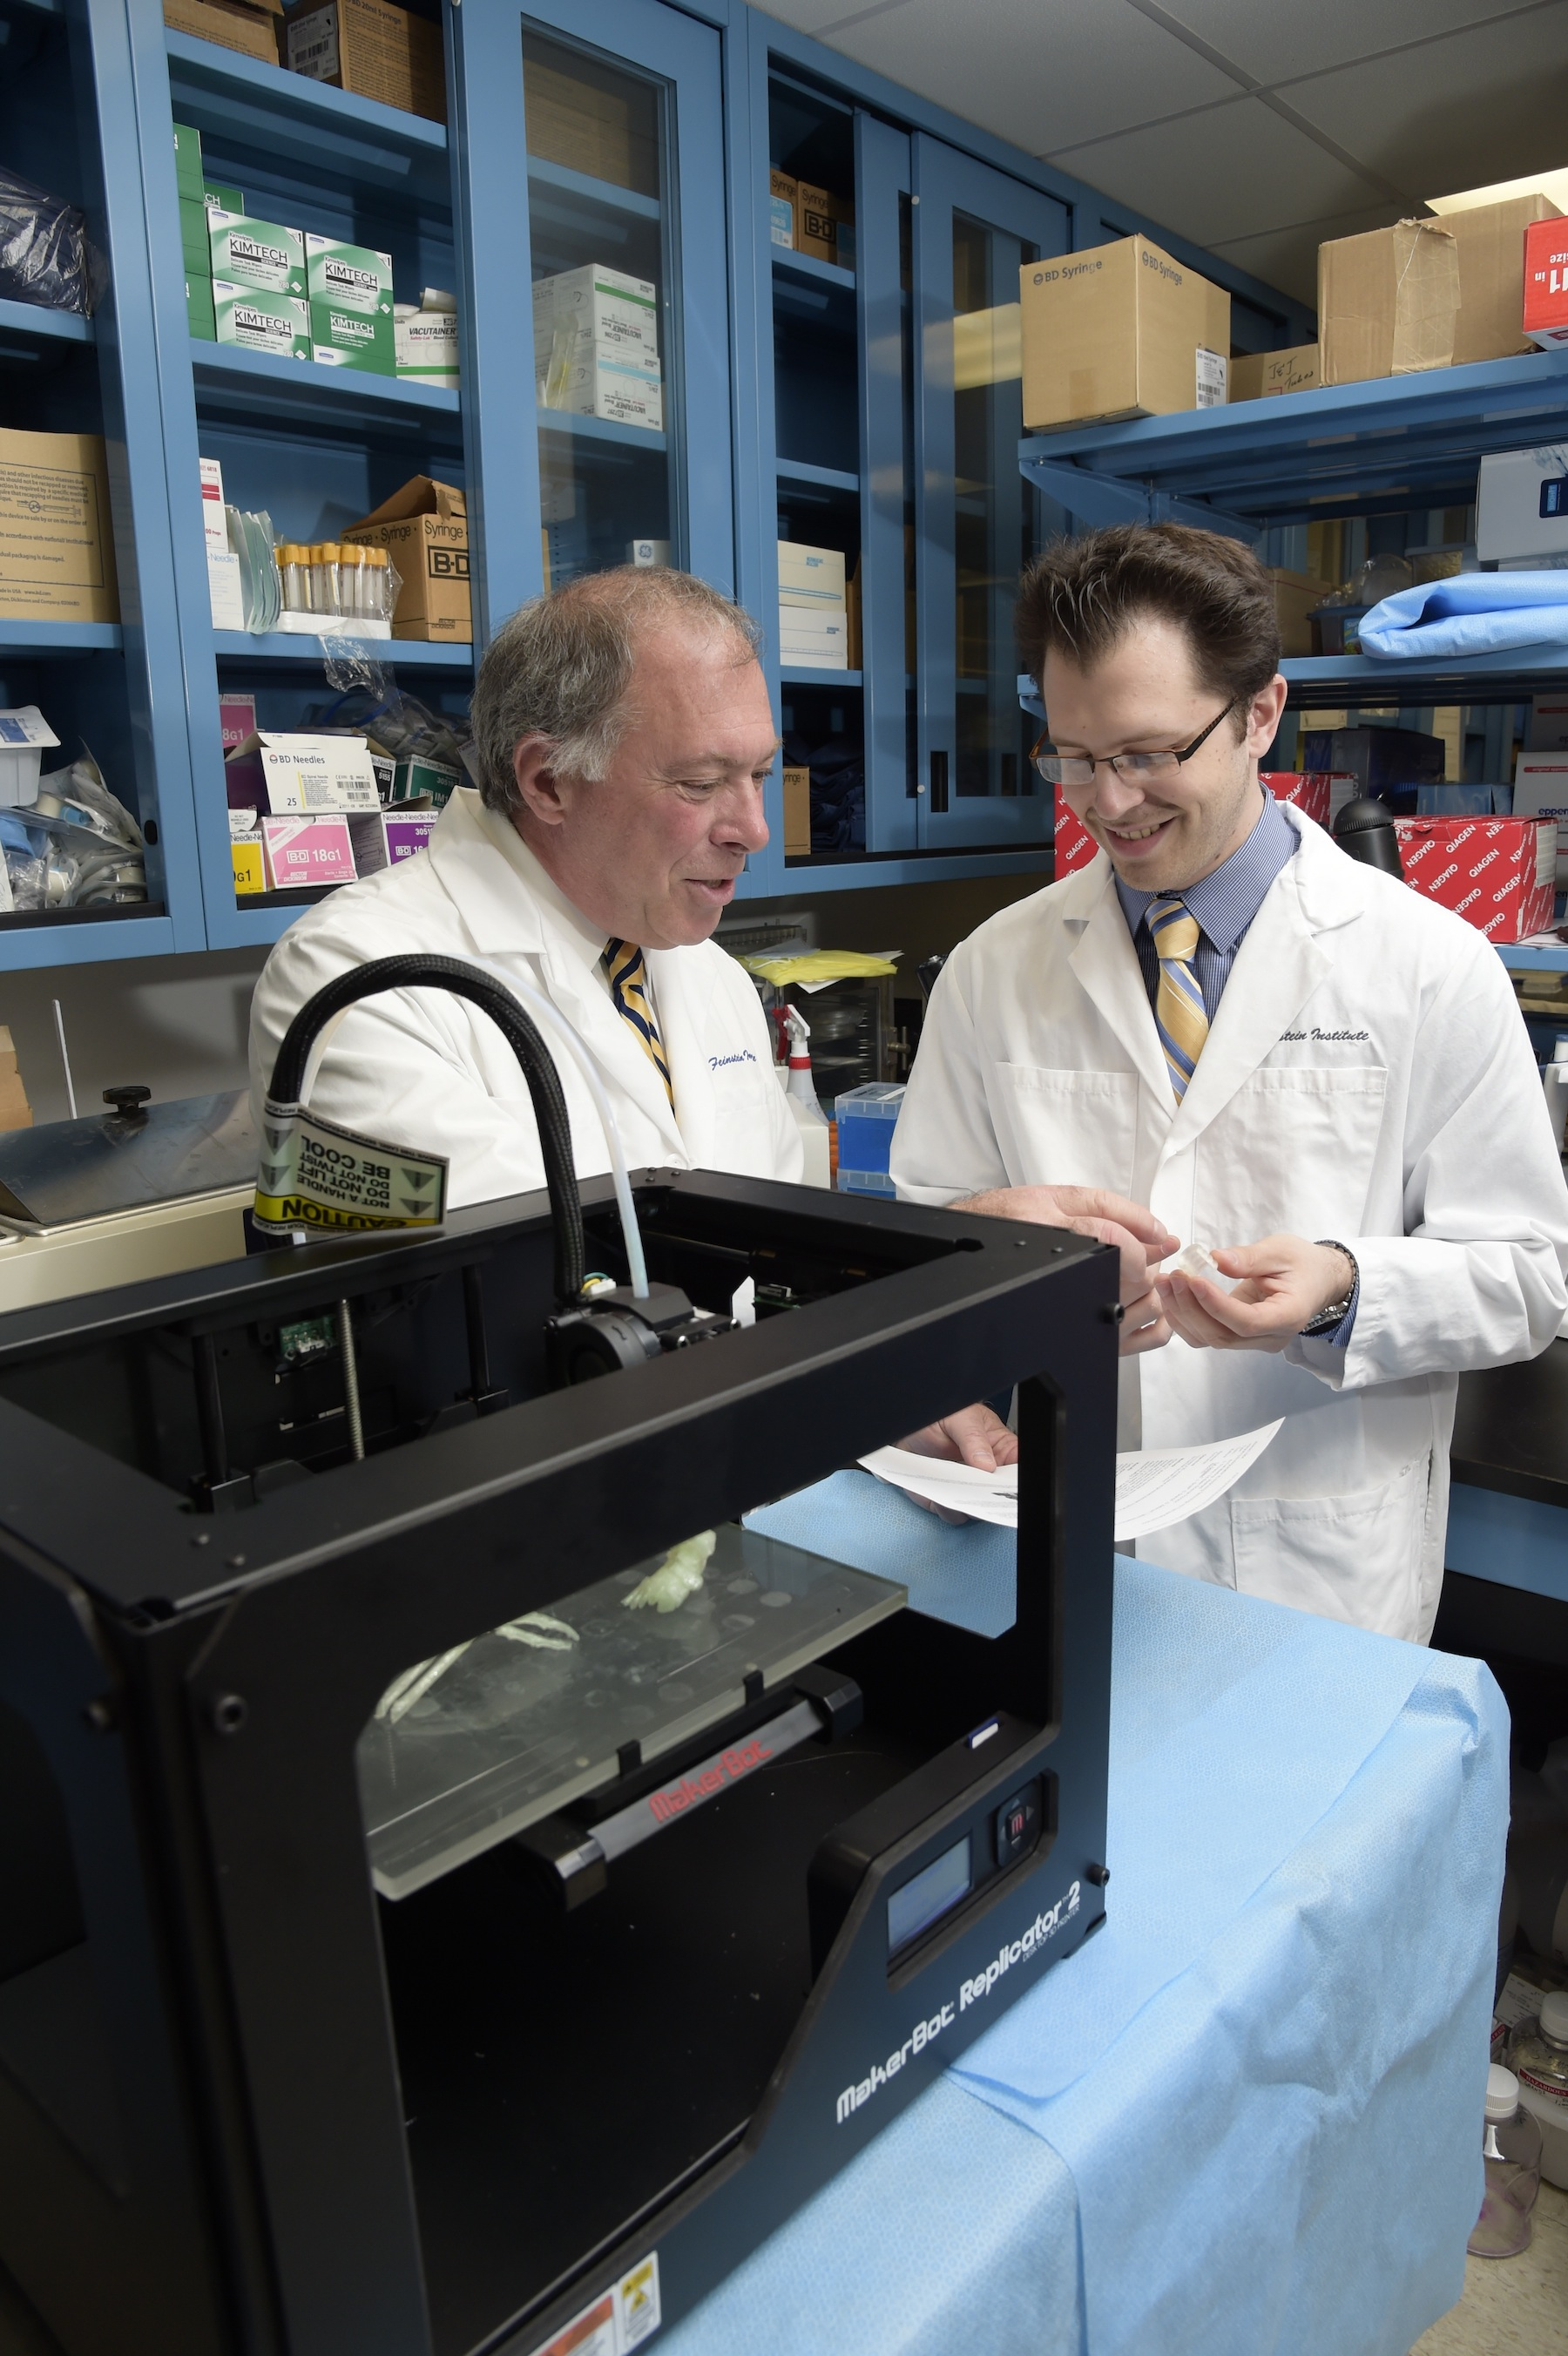 Daniel A. Grande, PhD, director of the Orthopedic Research Laboratory at the Feinstein Institute, and Todd Goldstein, an investigator at the Feinstein Institute, part of the North Shore-LIJ Health System, examine some of the 3D-printed parts they made on their MakerBot Replicator Desktop 3D Printer.